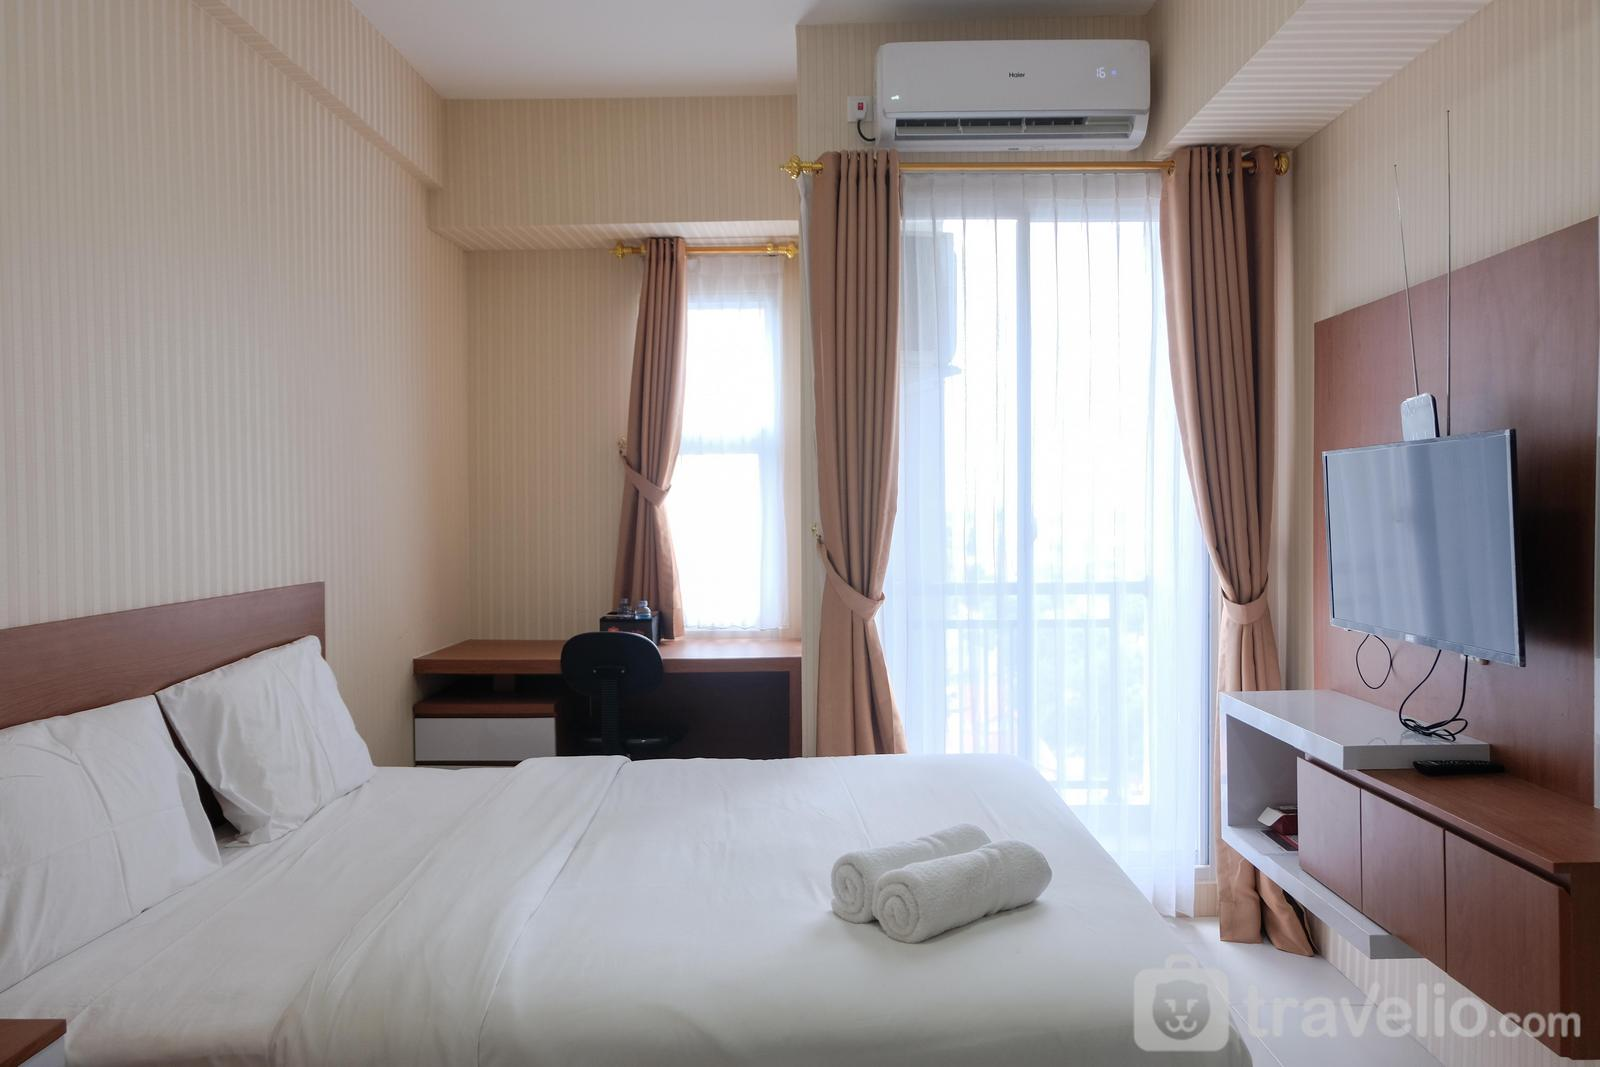 Akasa Pure Living Apartement - Modern and Cozy Studio Akasa Pure Living Apartment By Travelio